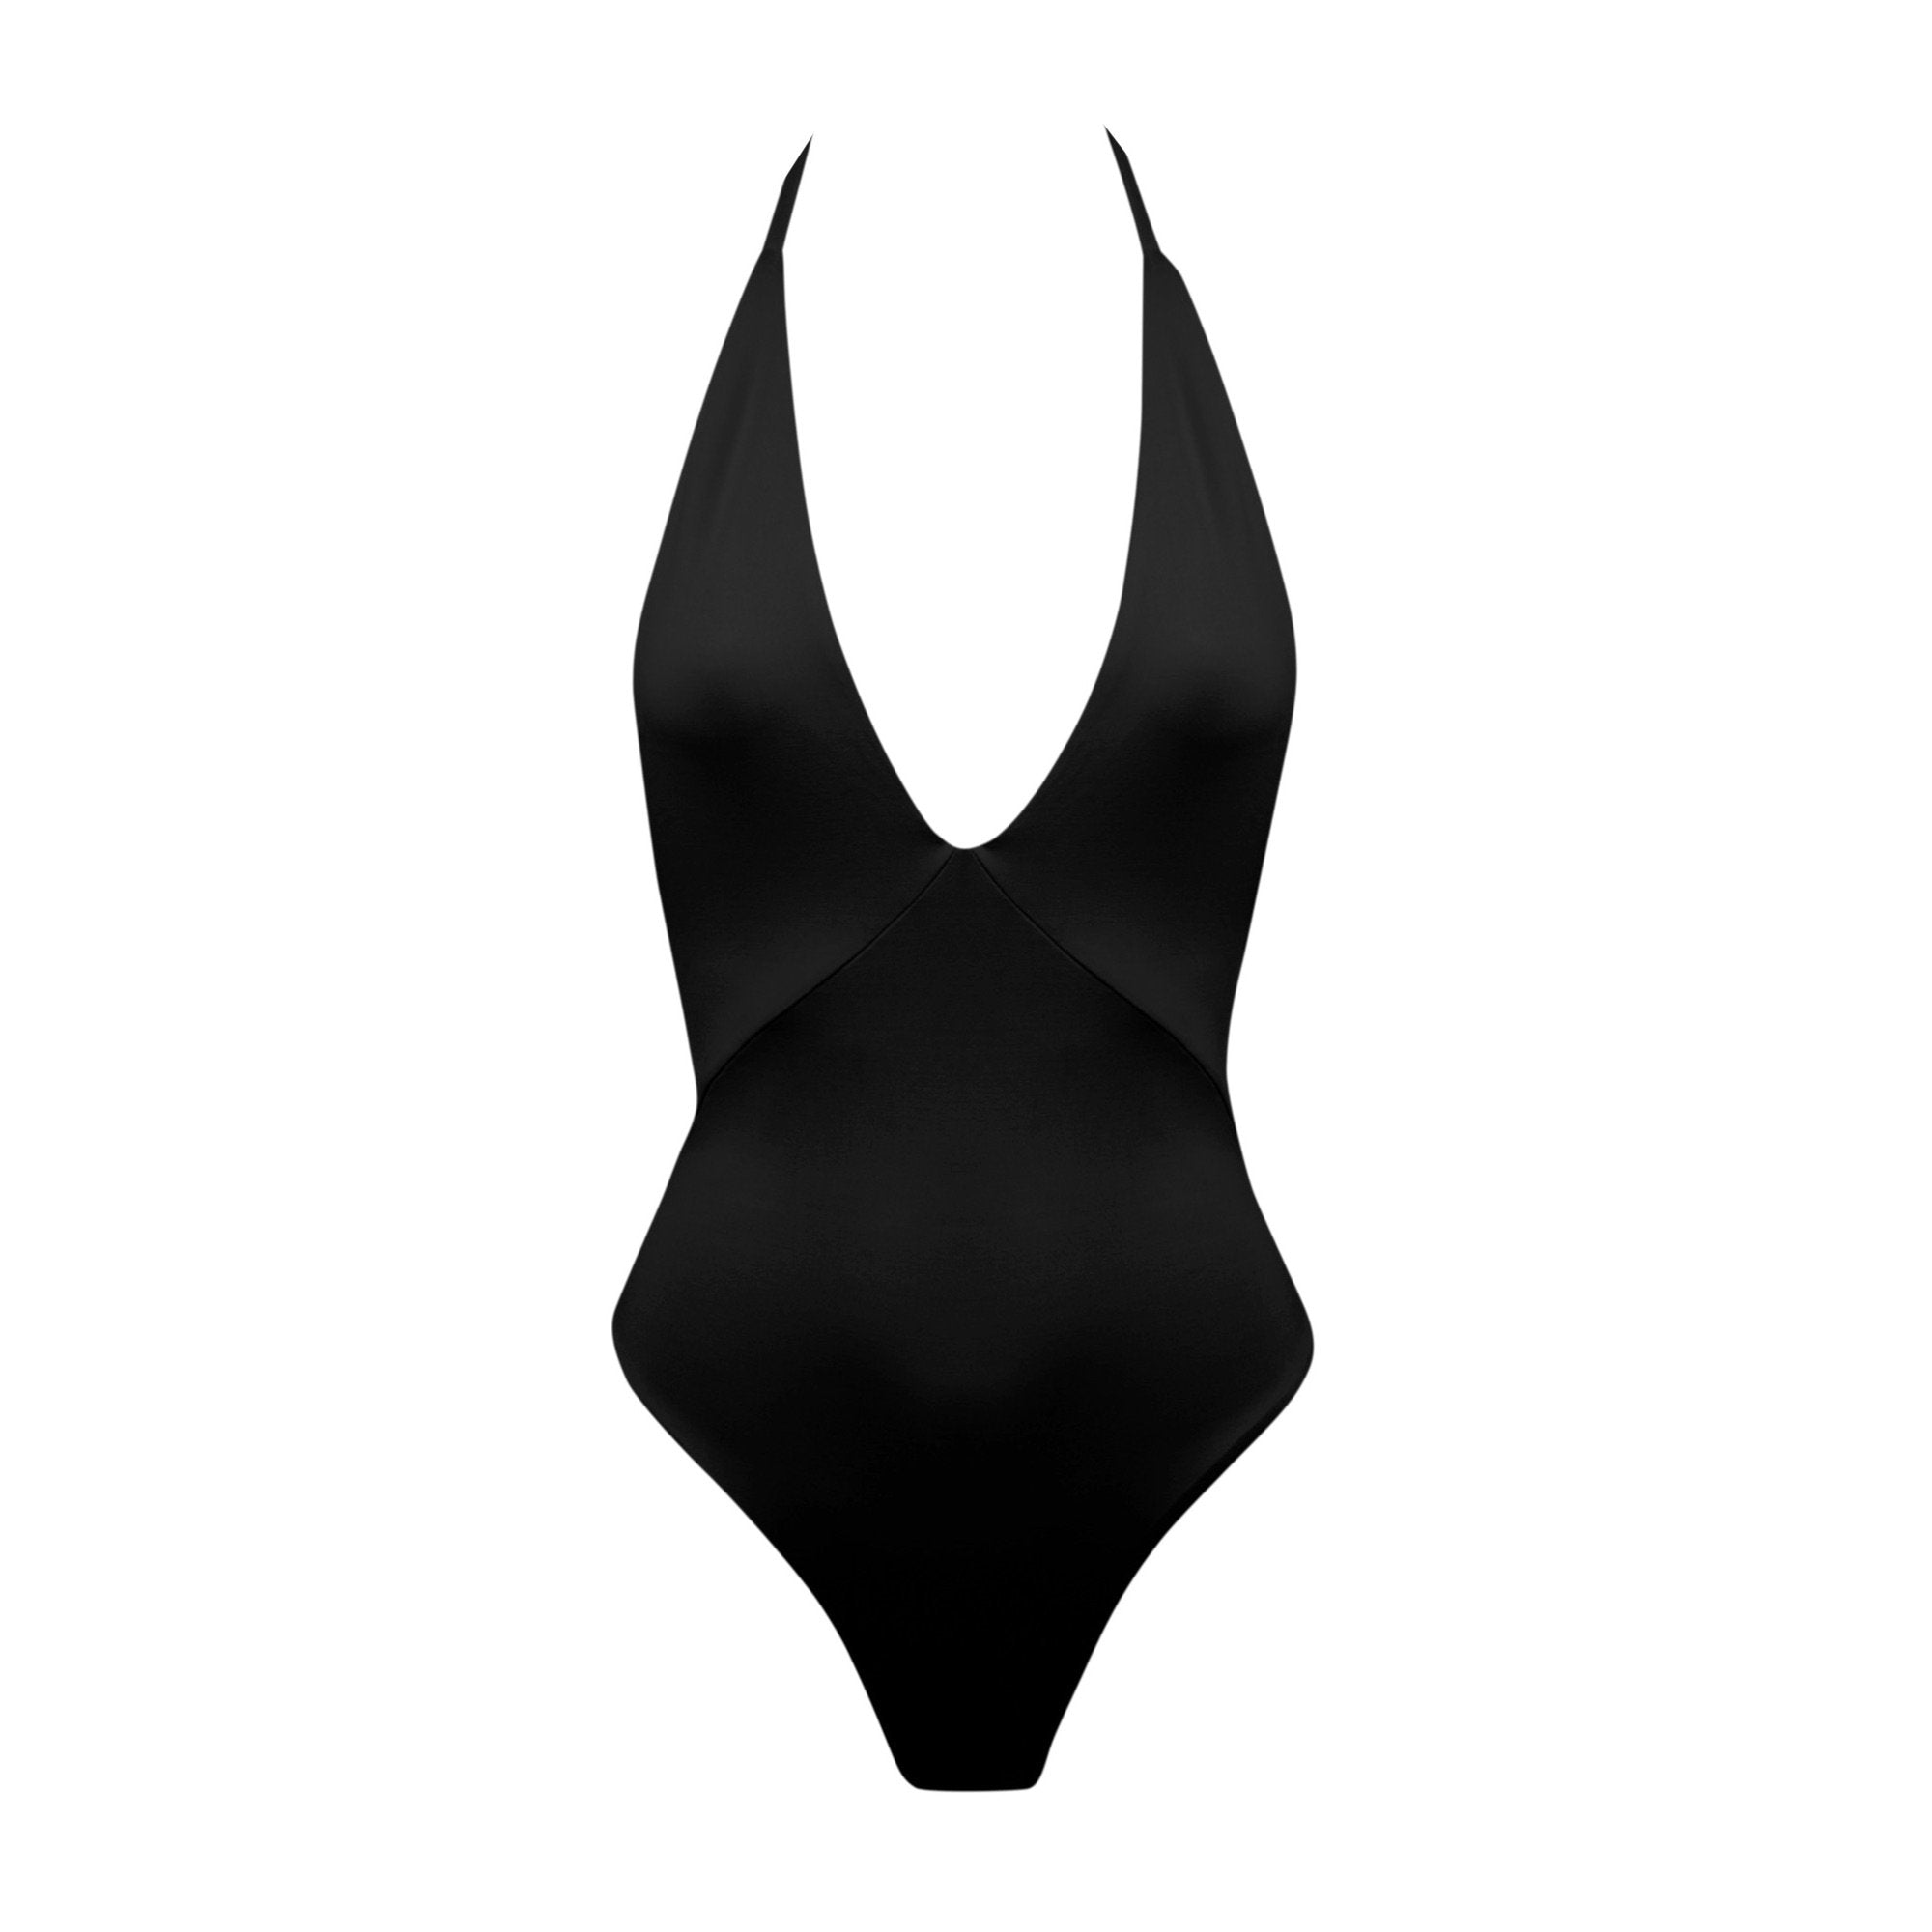 Hills One Piece Swimsuit in Black - Tuhkana